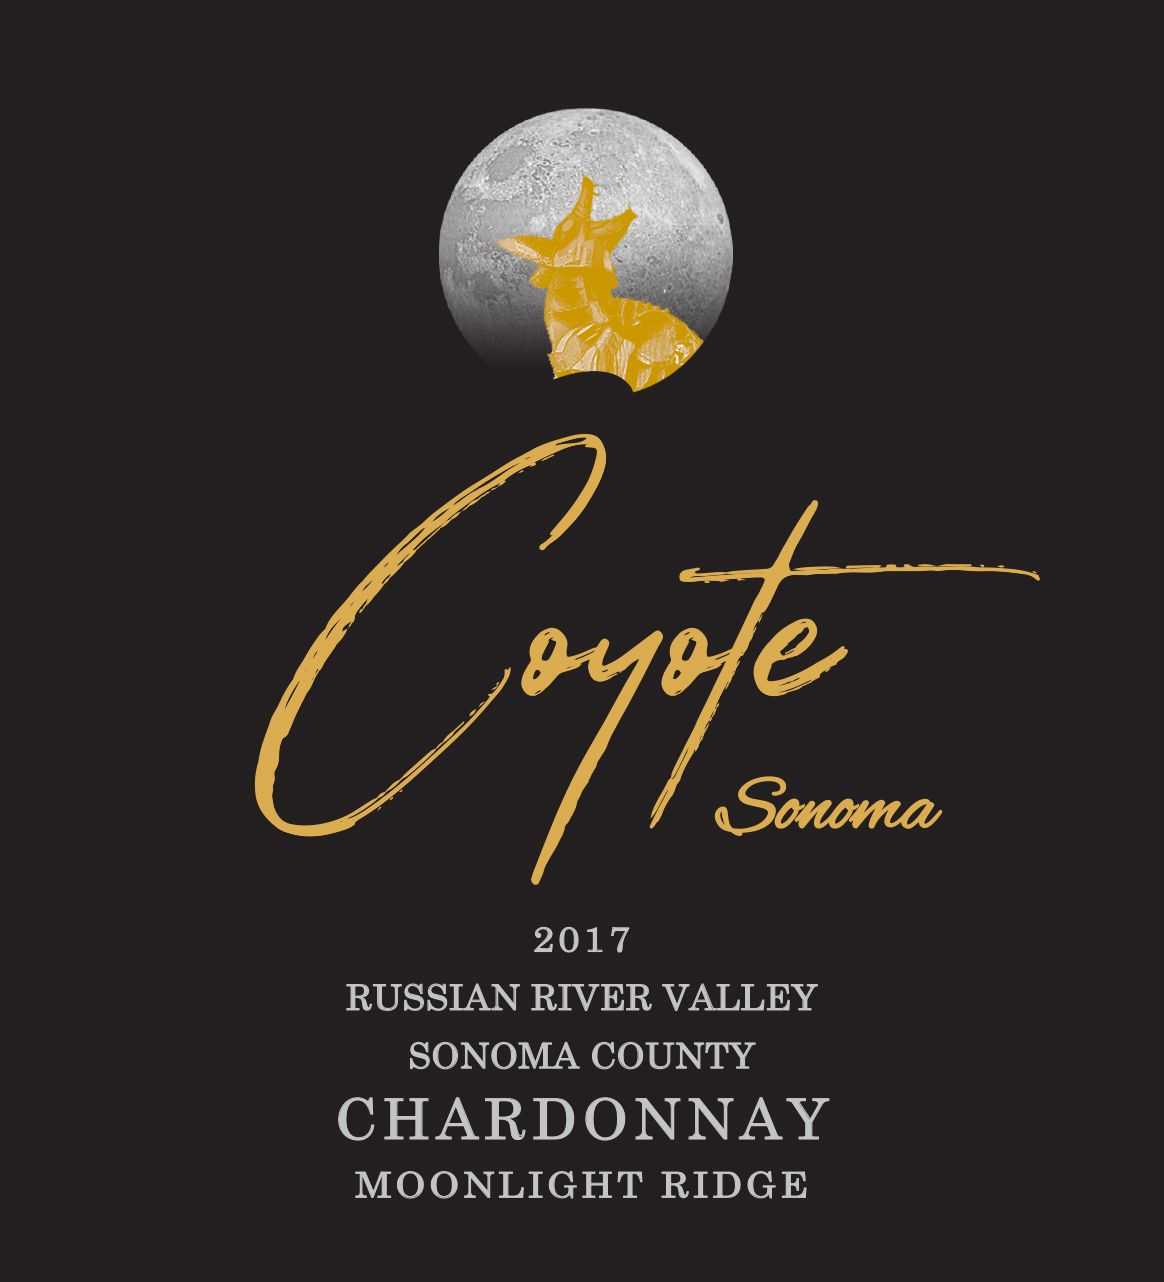 2017 Coyote Sonoma Chardonnay, Moonlight Ridge THUMBNAIL